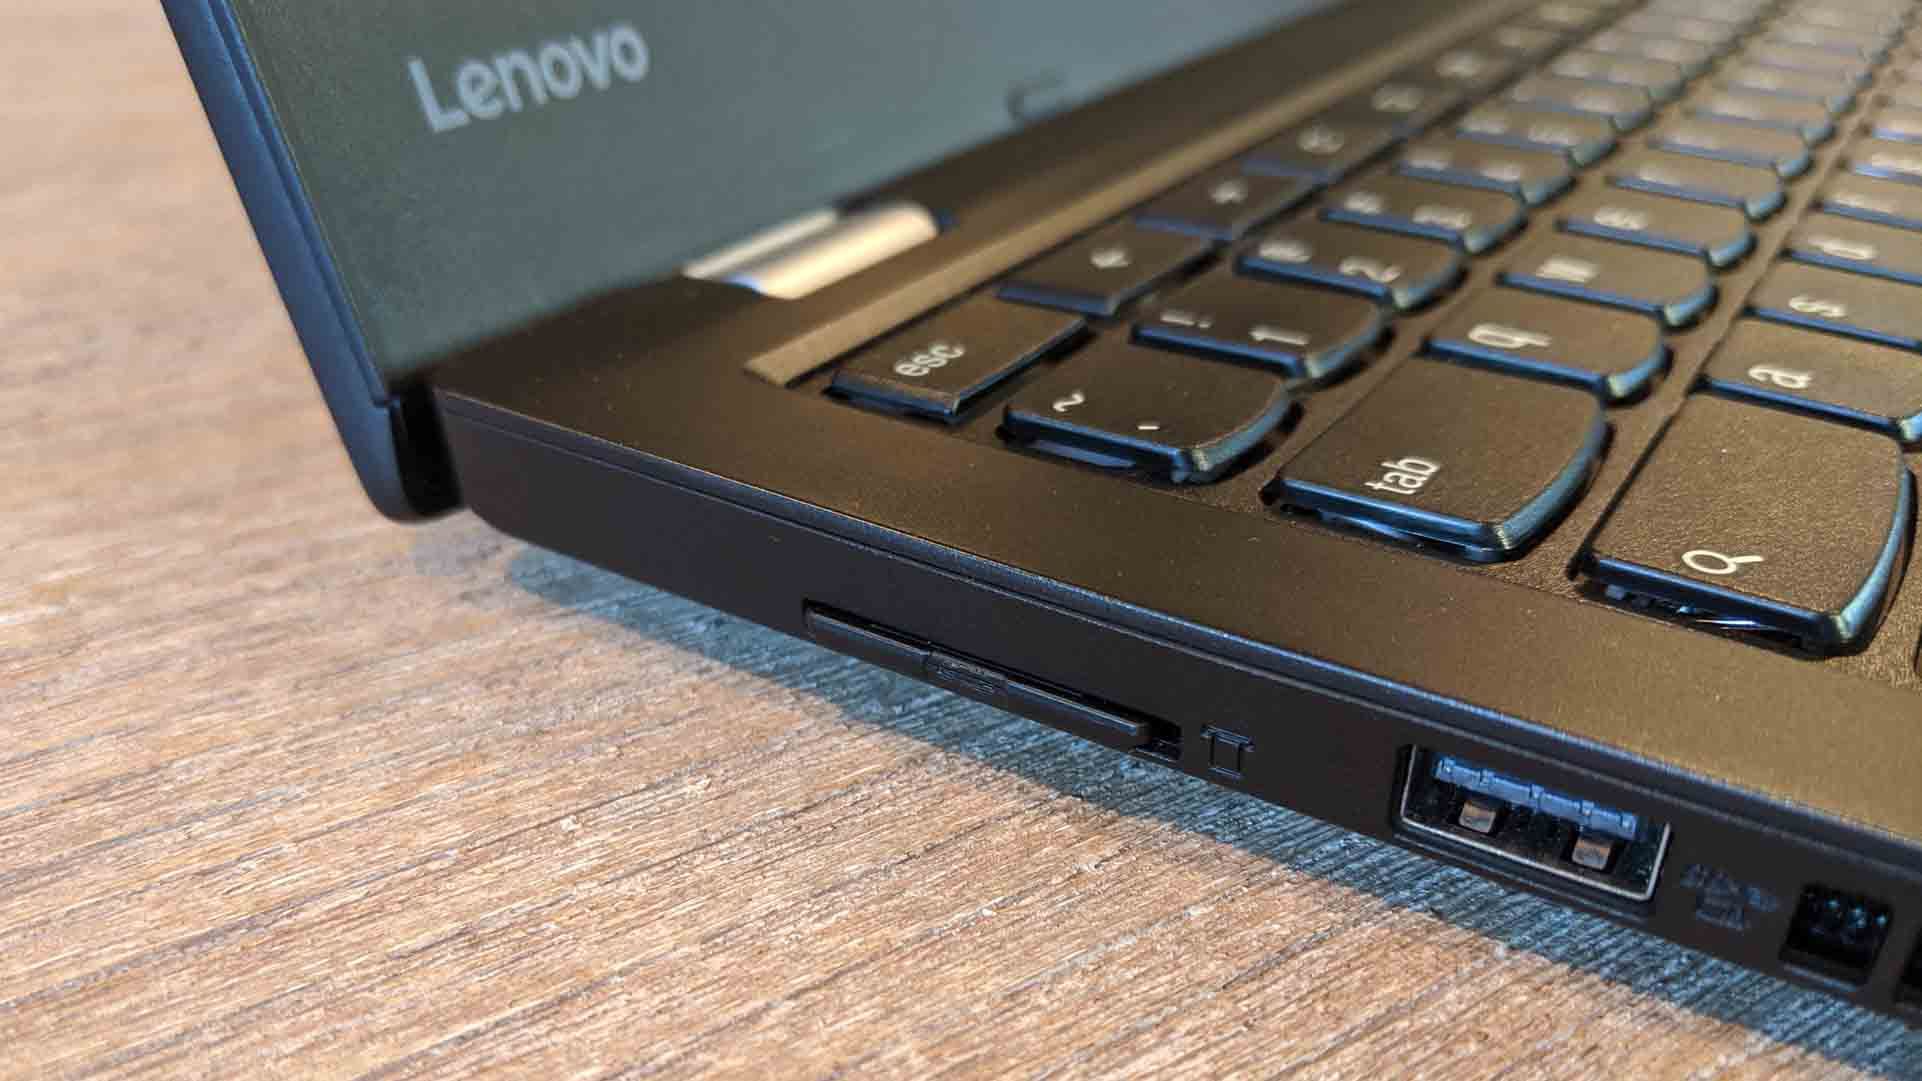 An SD card inserted into a Lenovo laptop.